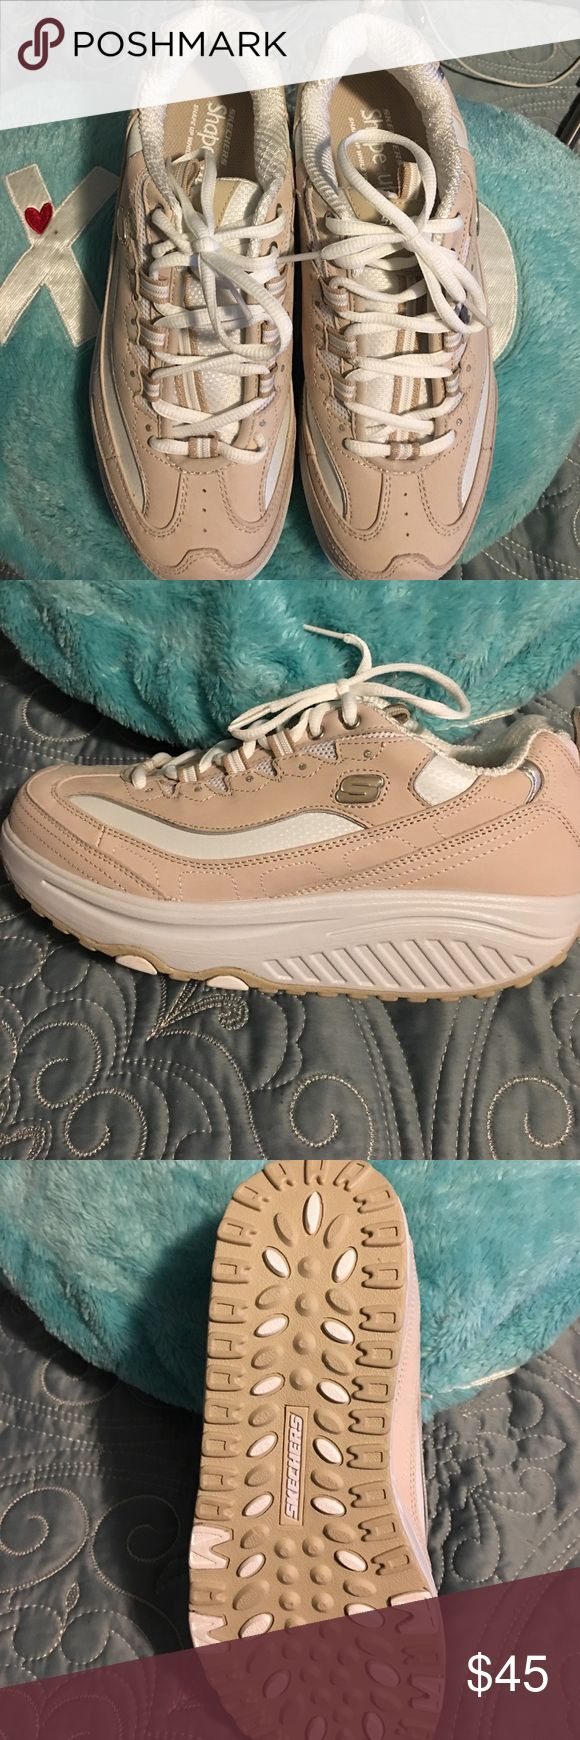 SKECHERS Shape-Ups Brand new never worn, SKECHERS Shape-Ups sneakers 👟, SAND in color and size 8.5 US! Comes with Workout CD-ROM! Time for bikinis 👙 ladies Skechers Shoes Sneakers